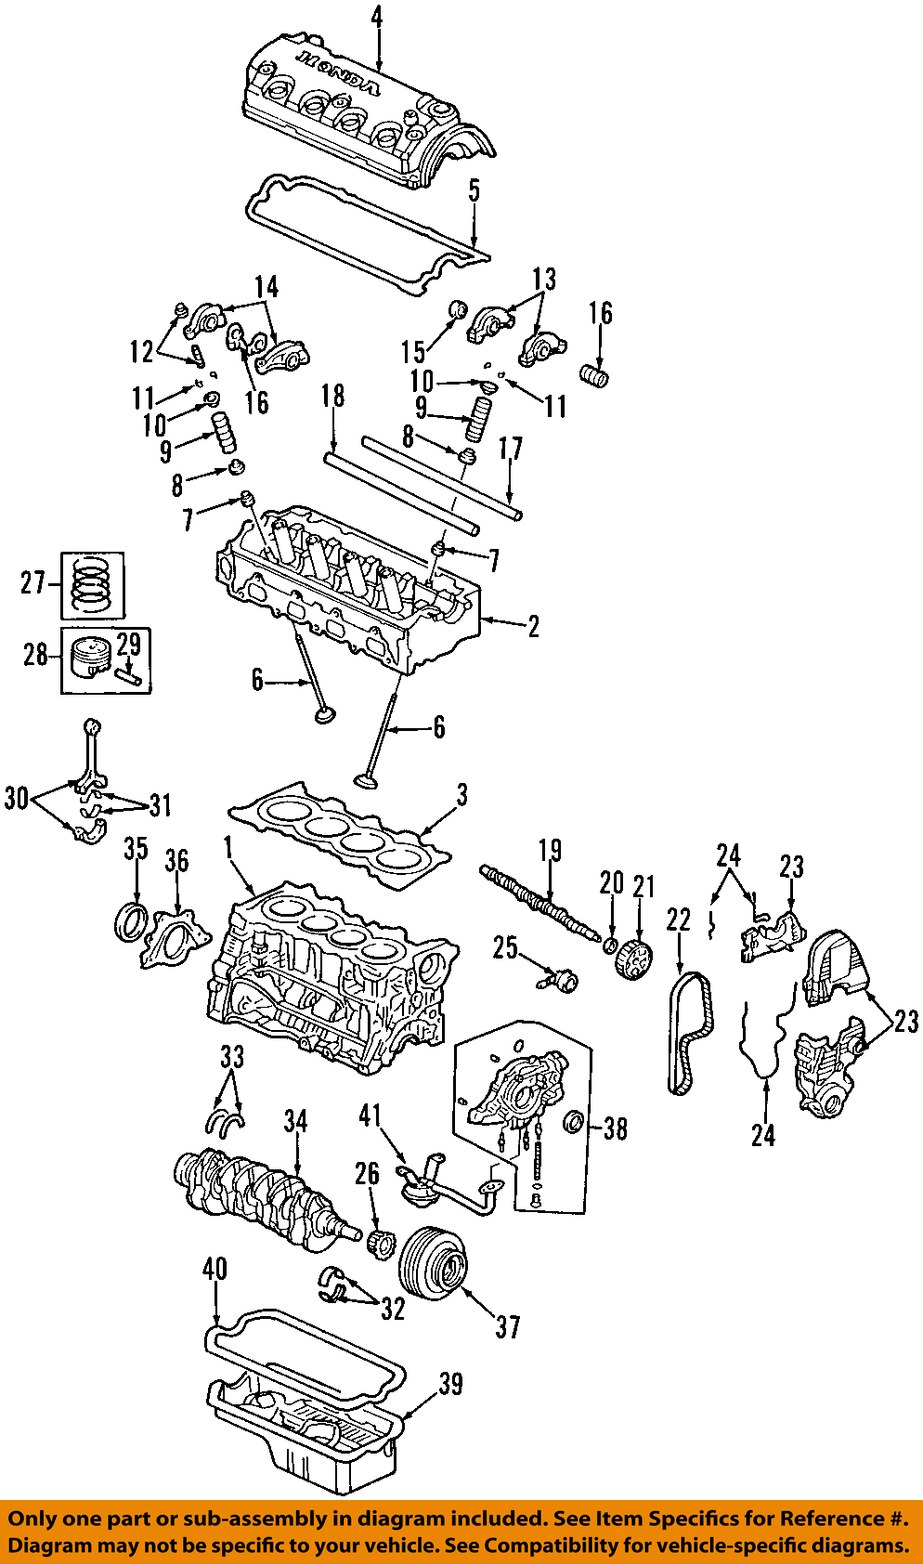 hight resolution of 1989 honda civic engine diagram wiring diagram expert 1989 honda civic engine diagram